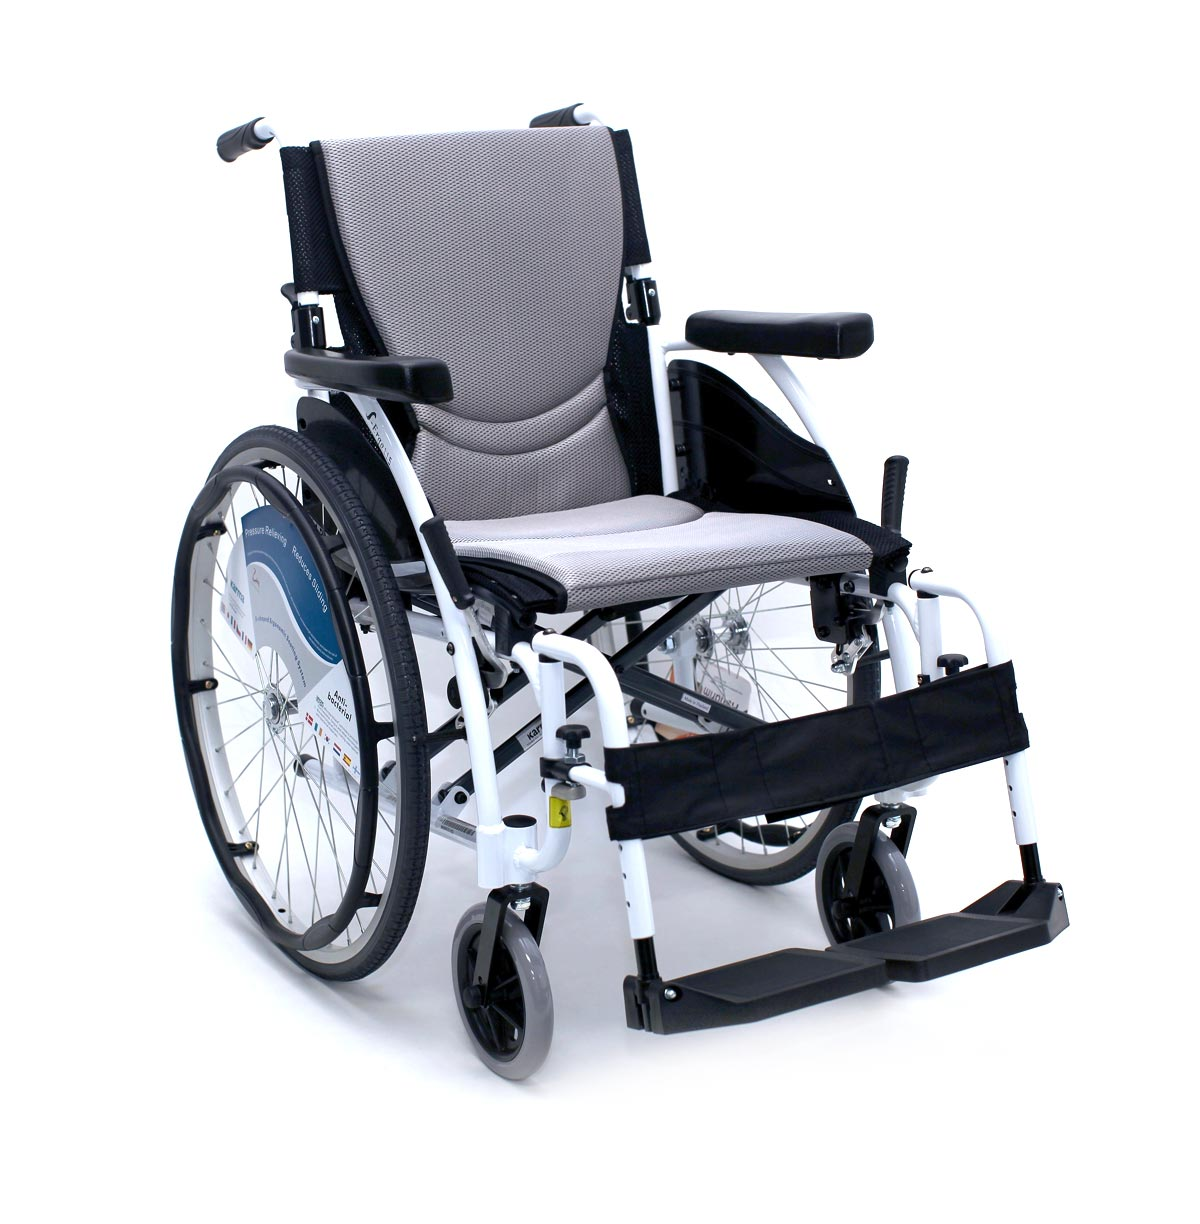 "Karman Healthcare S-Ergo Alpine White just 25 lbs Ultralight White Wheelchair, 18"" Seat Width"